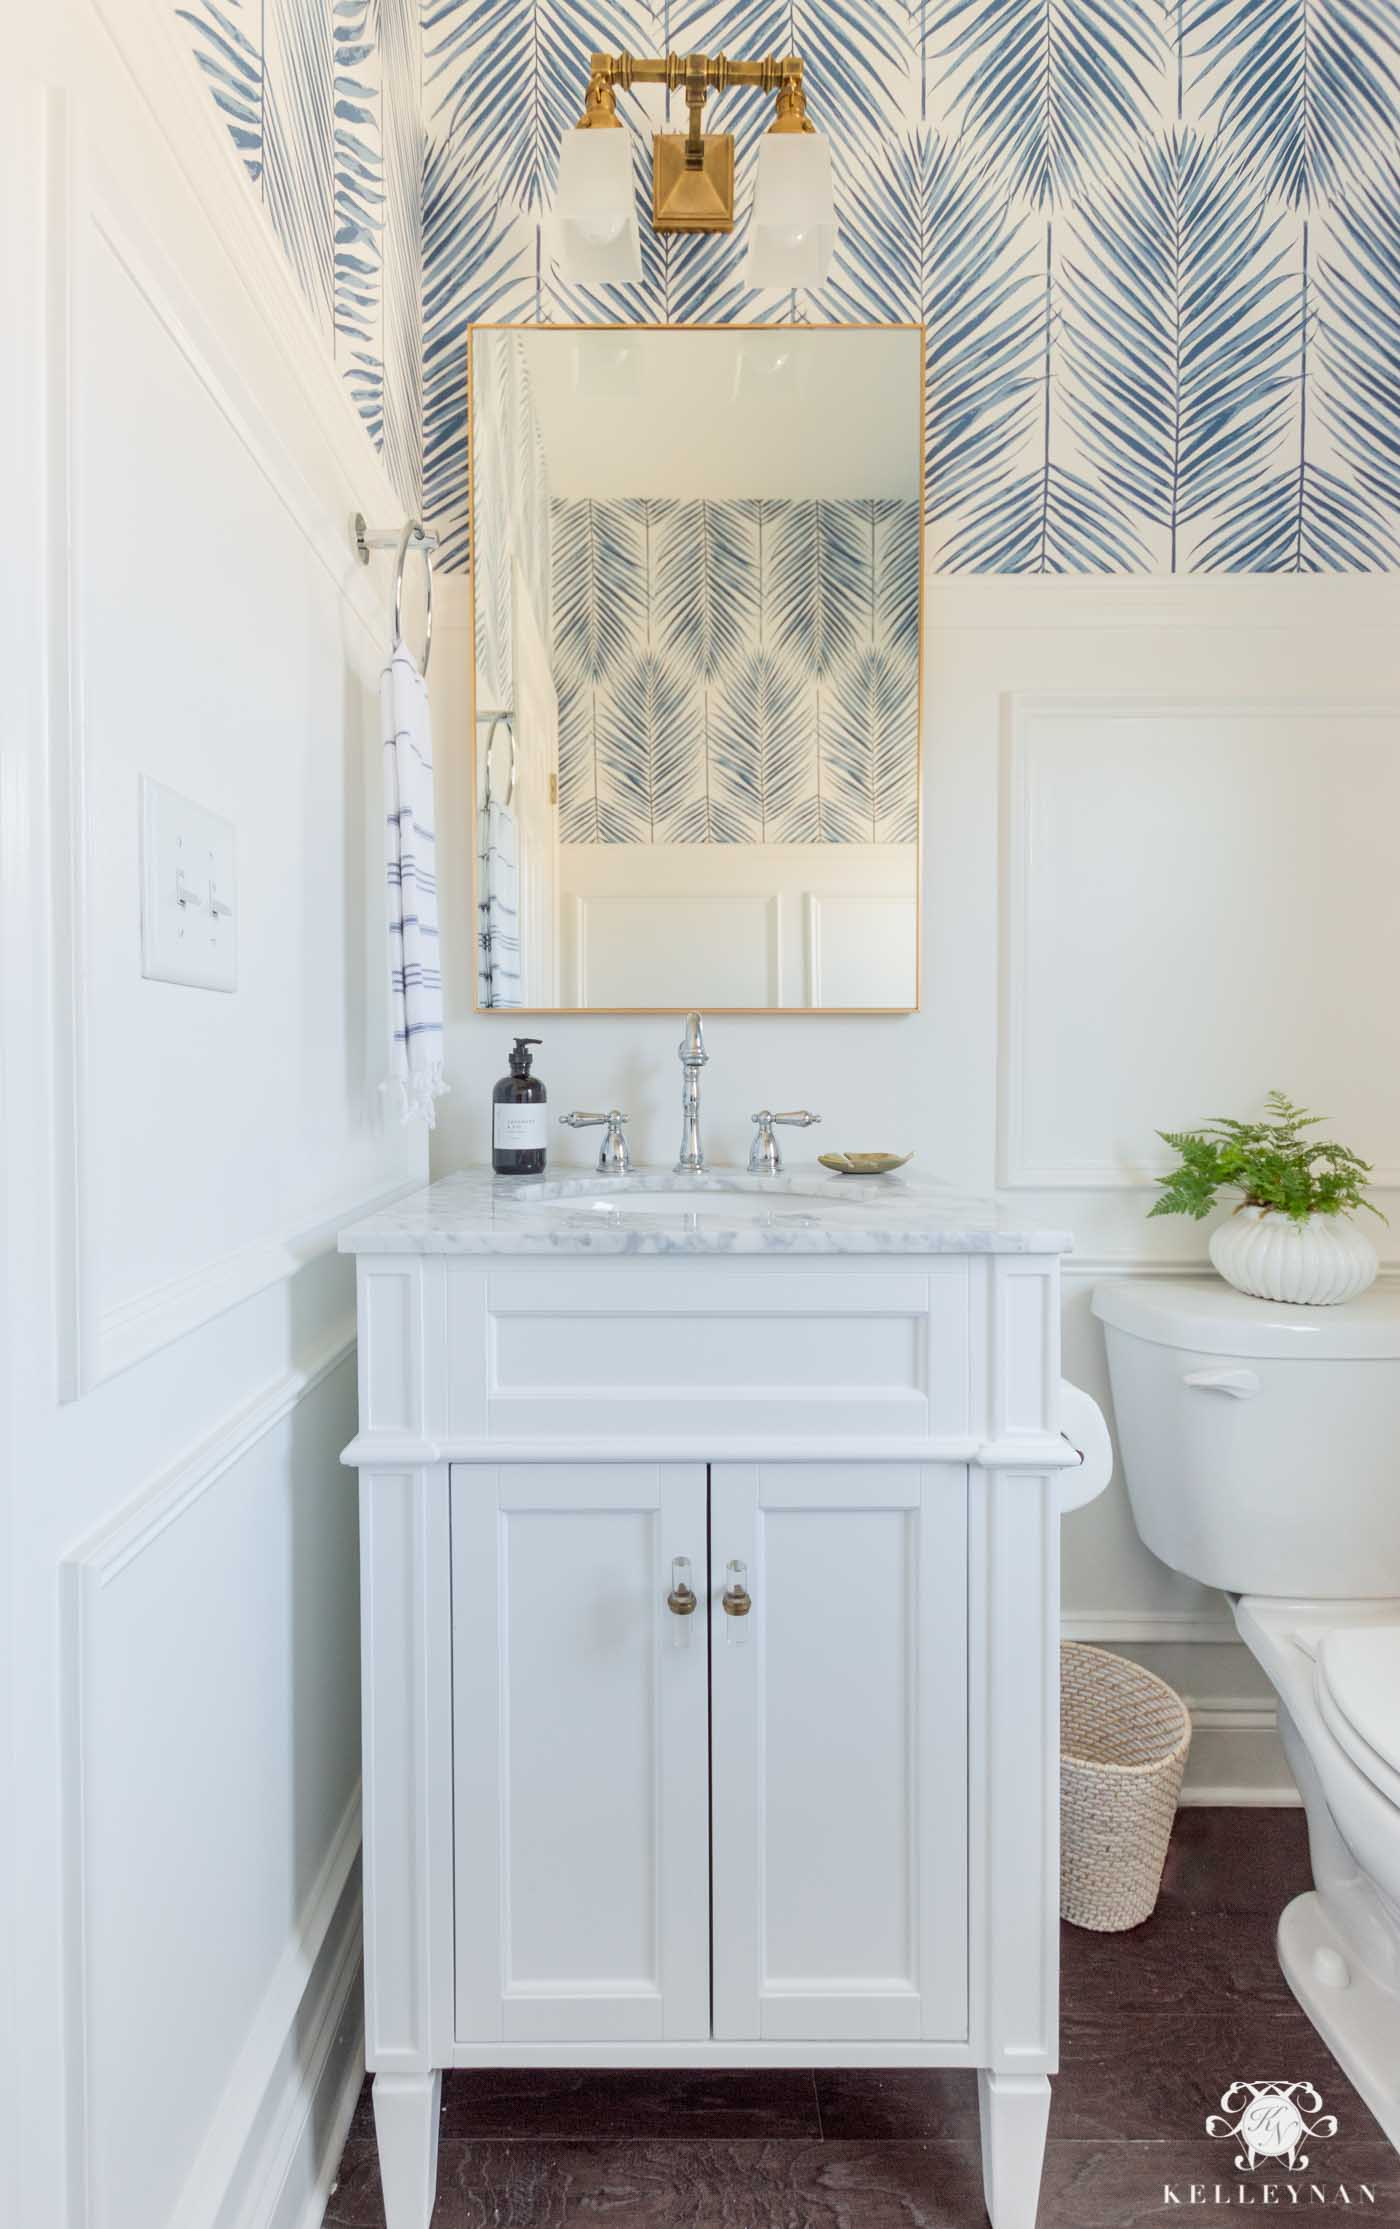 Small Powder Room Design Ideas -- Coastal Modern Design and Decor